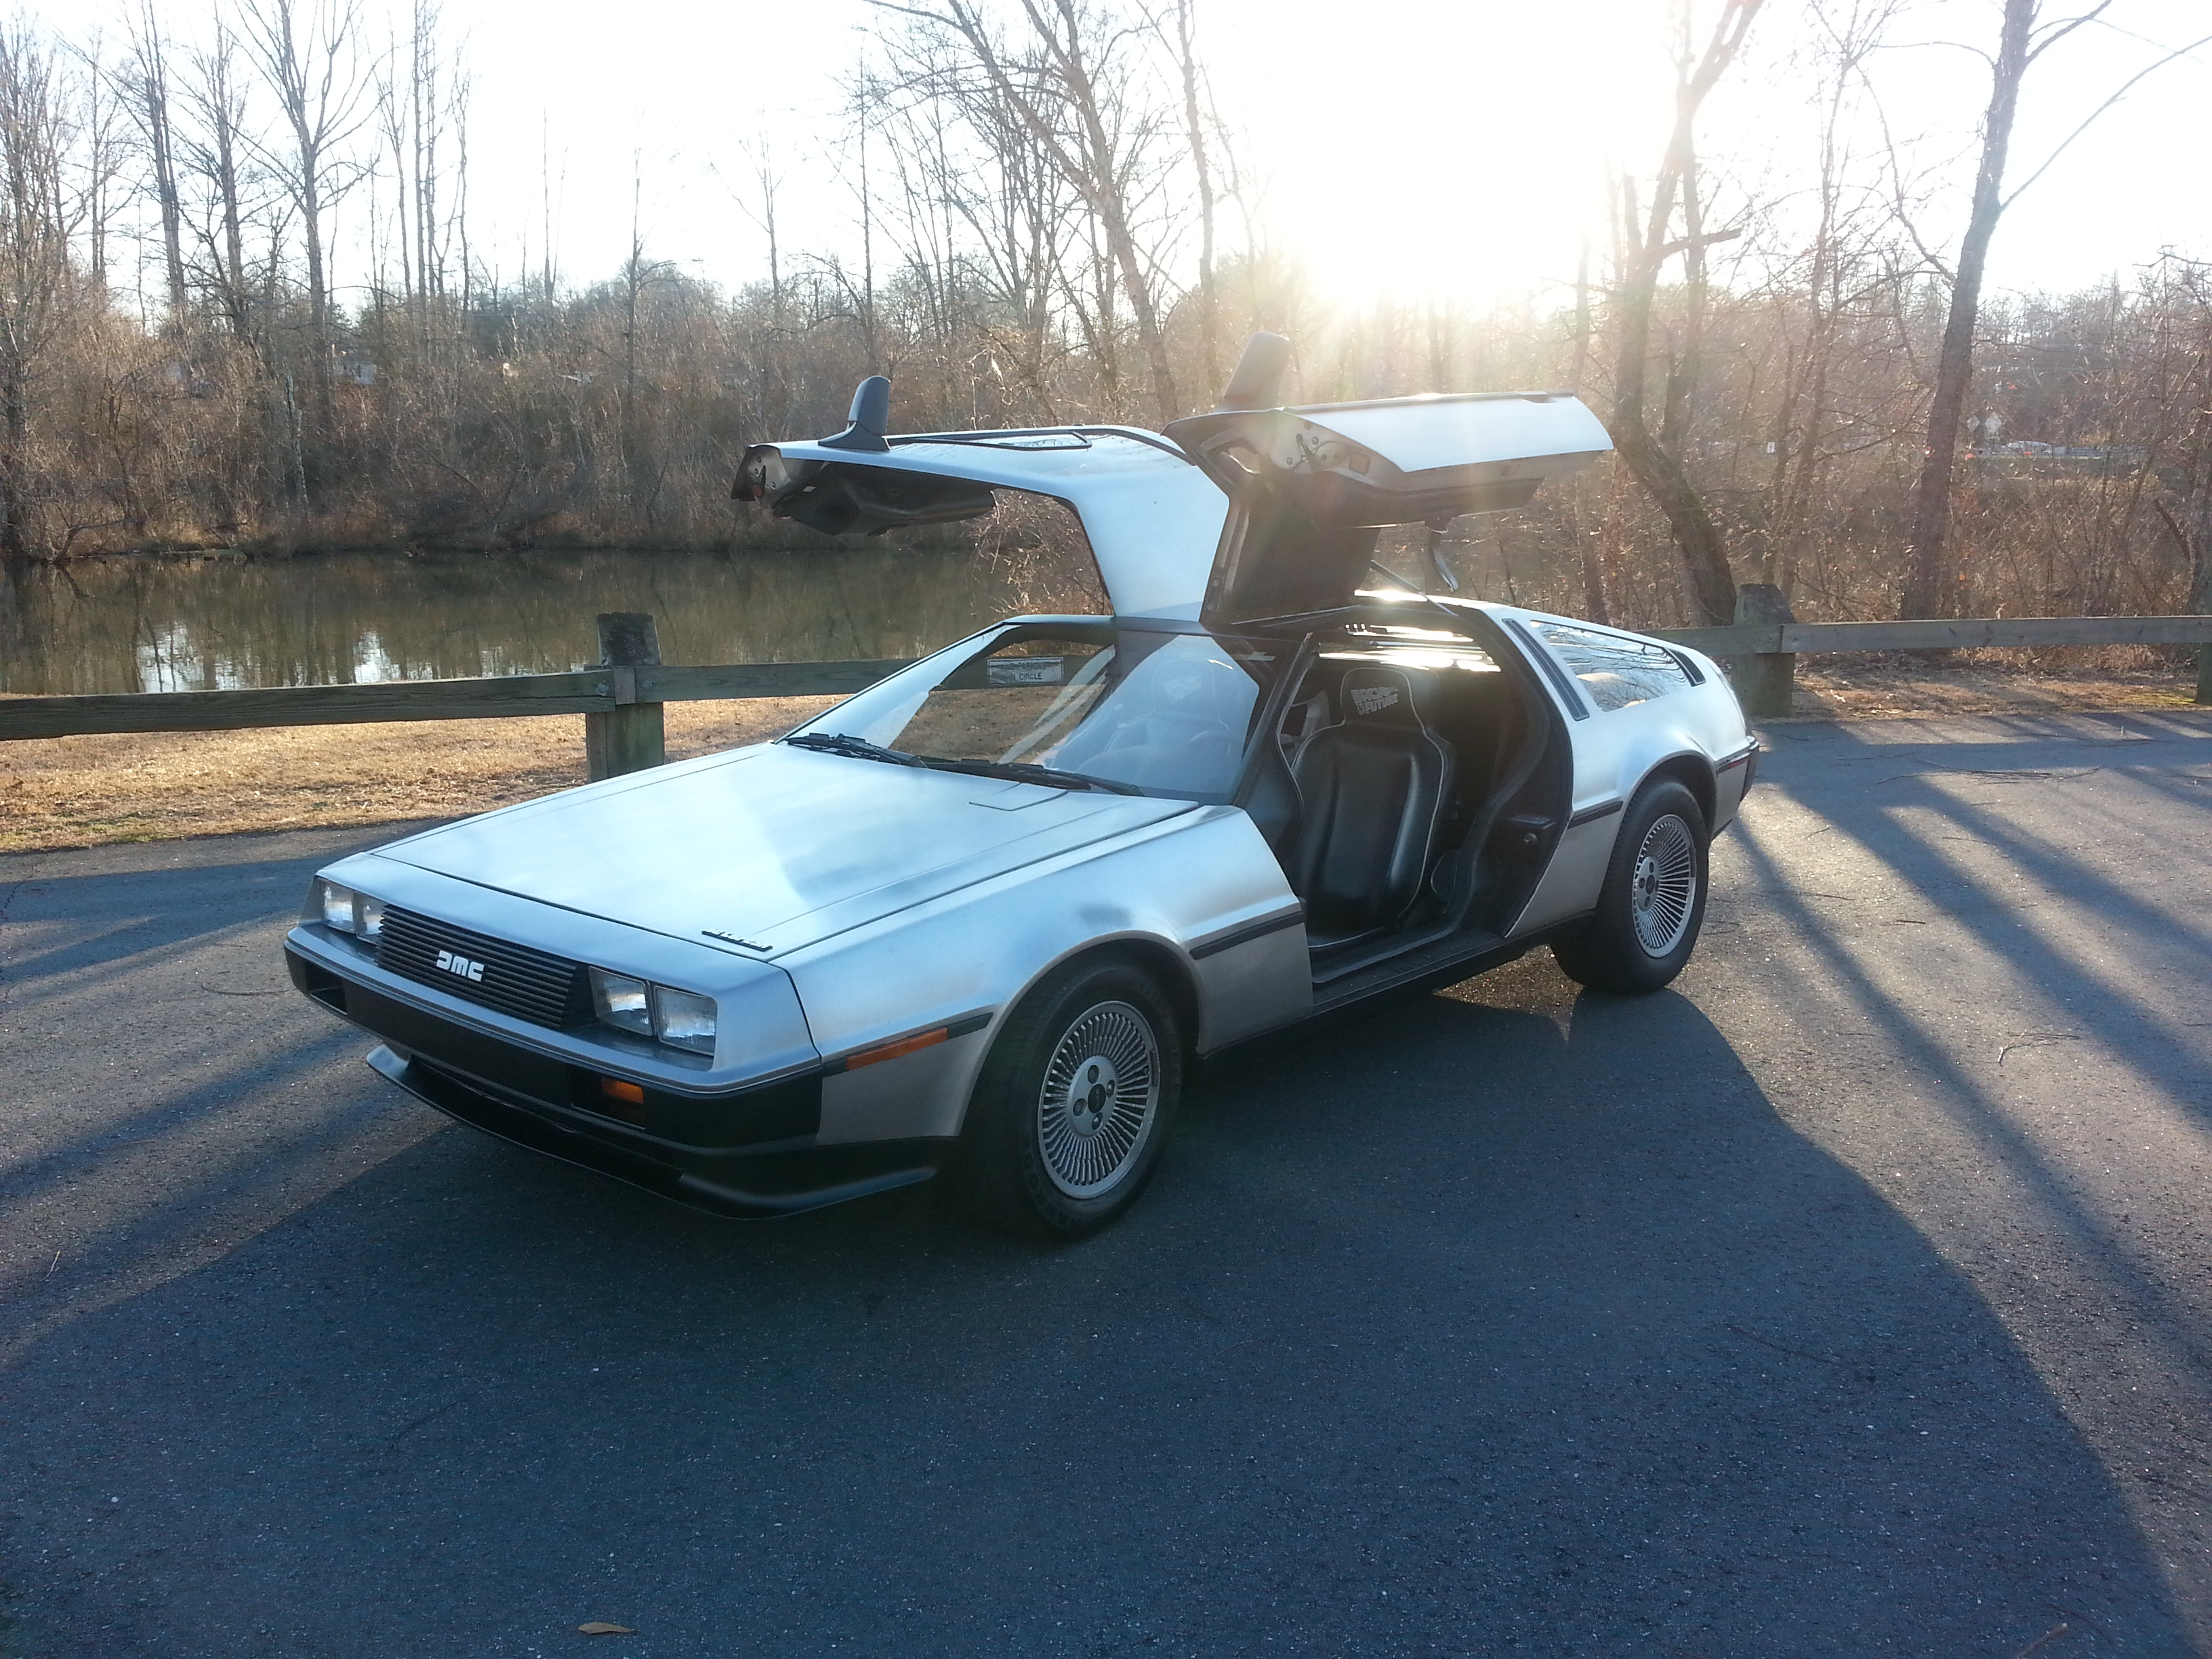 silkie 1981 DeLorean DMC-12